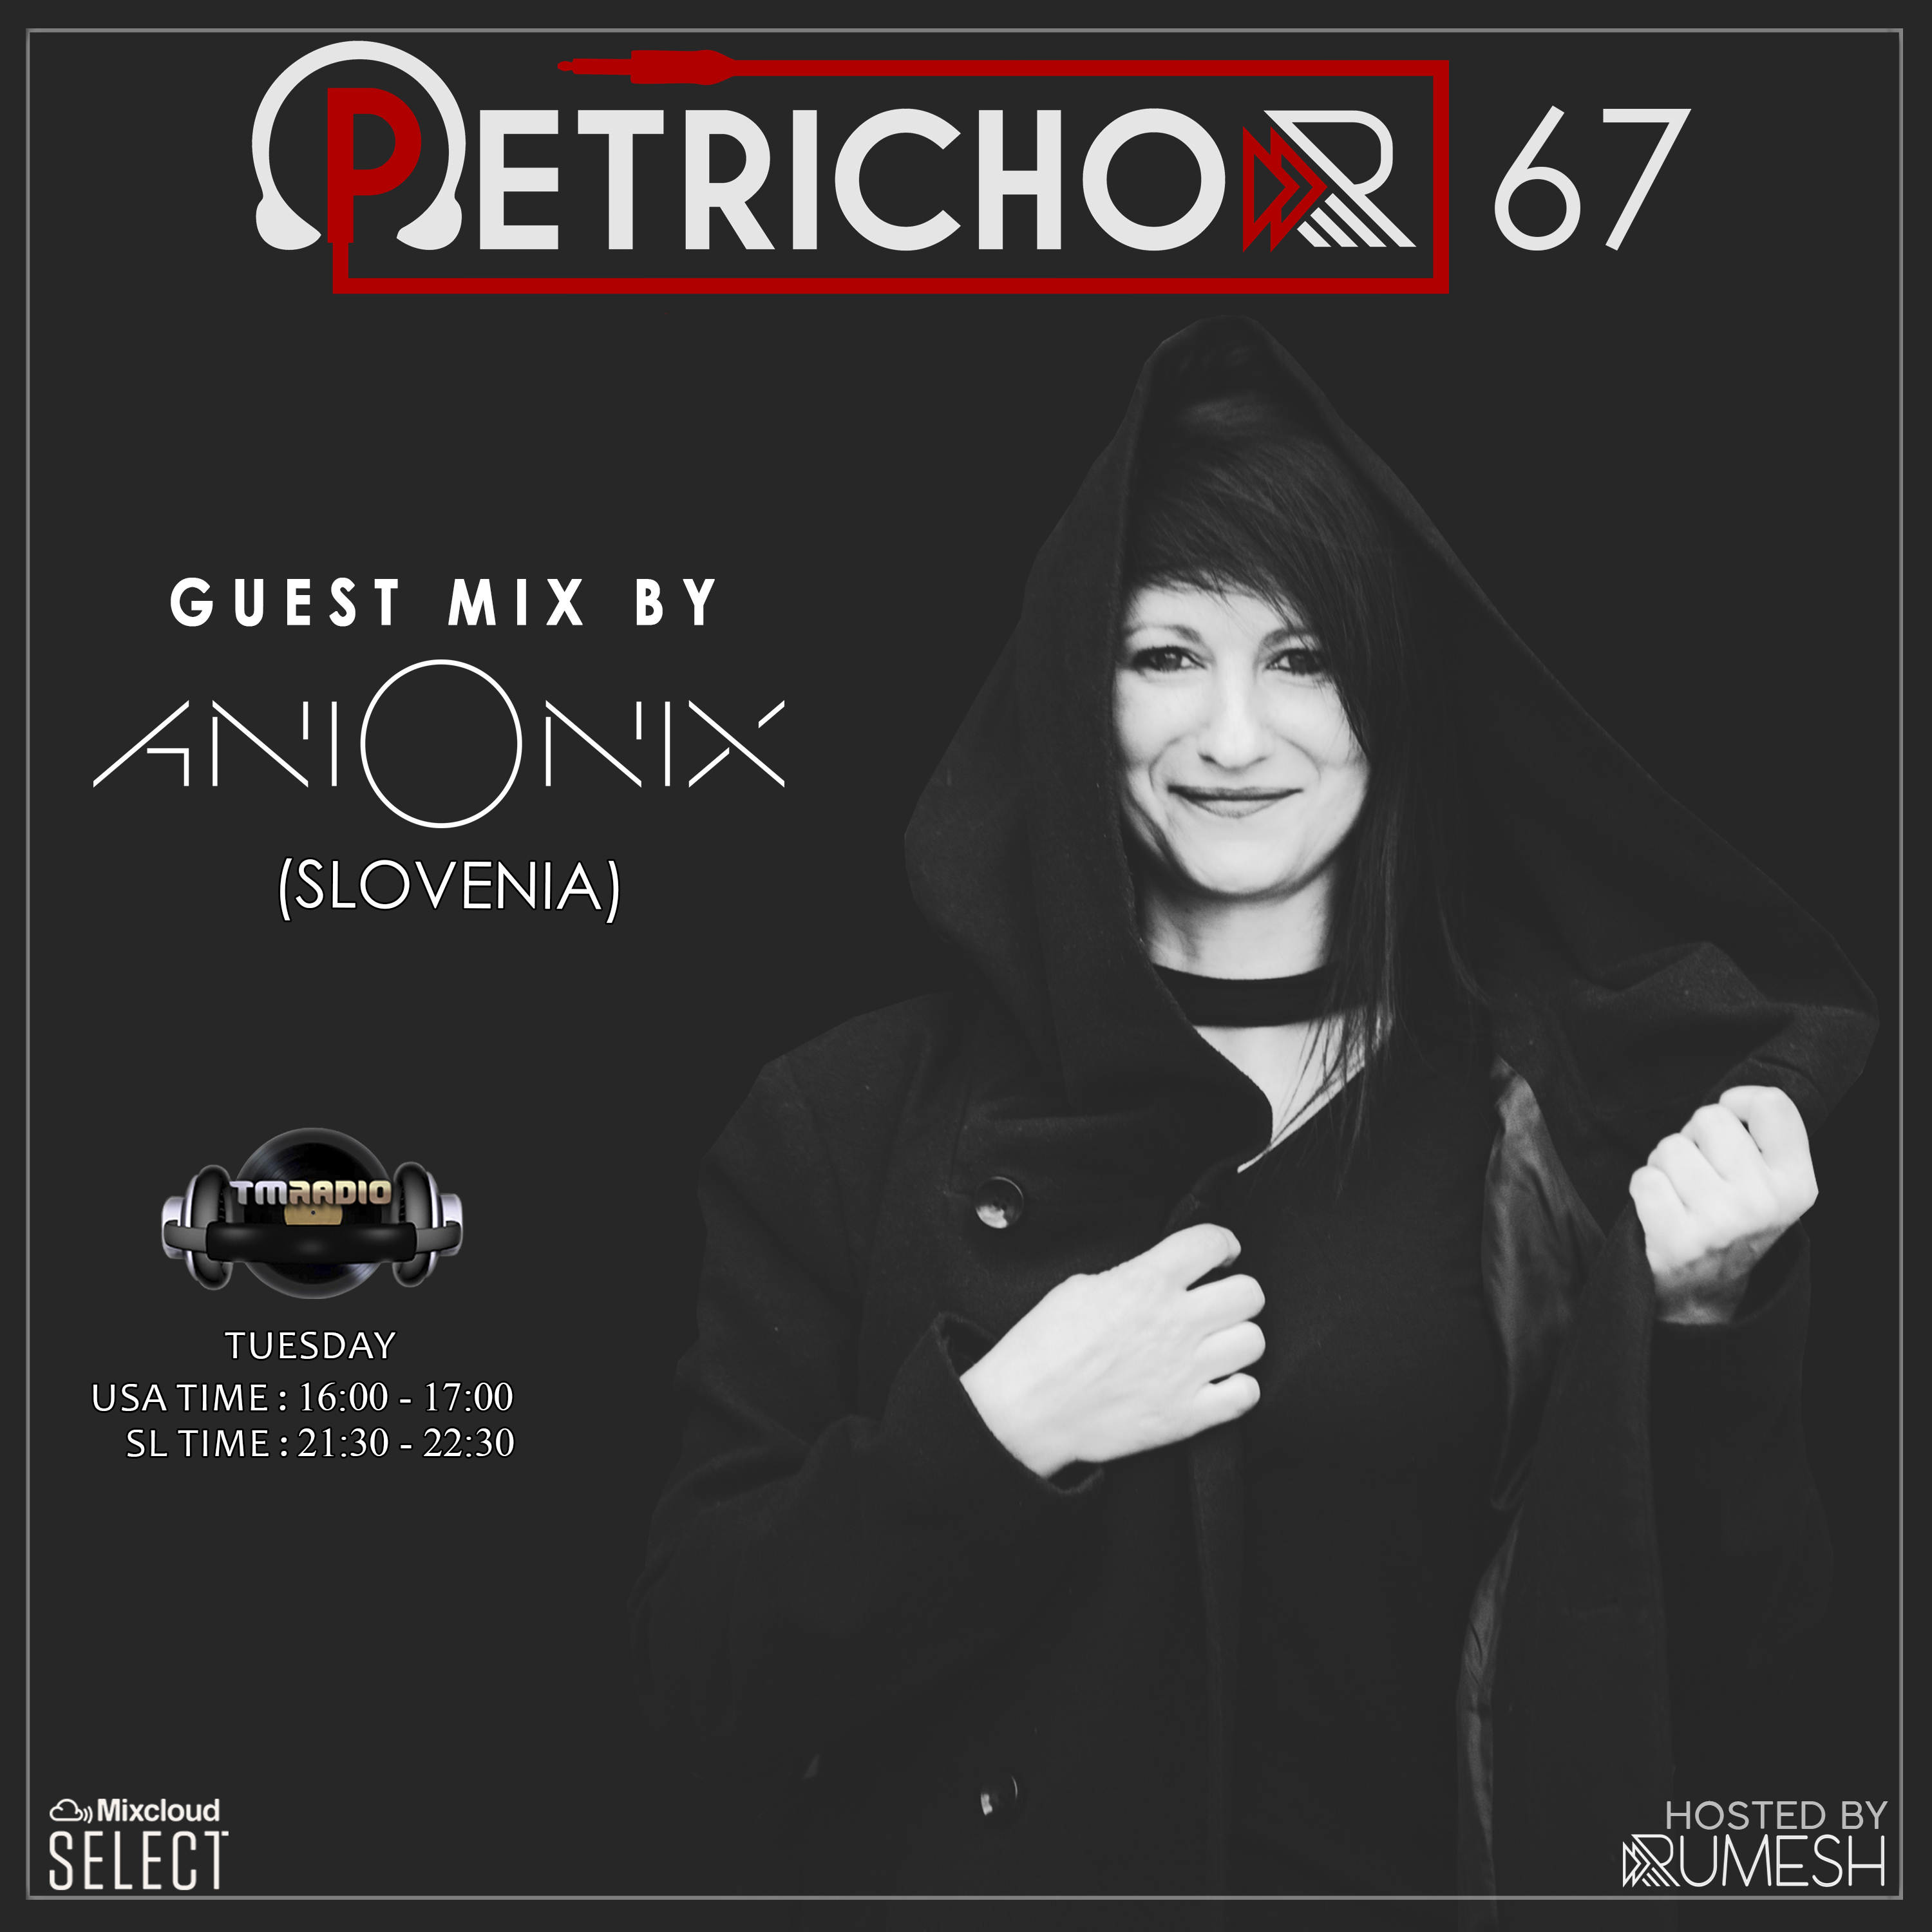 Petrichor :: Petrichor 67 guest mix by Ani Onix -(Slovenia) (aired on February 18th) banner logo